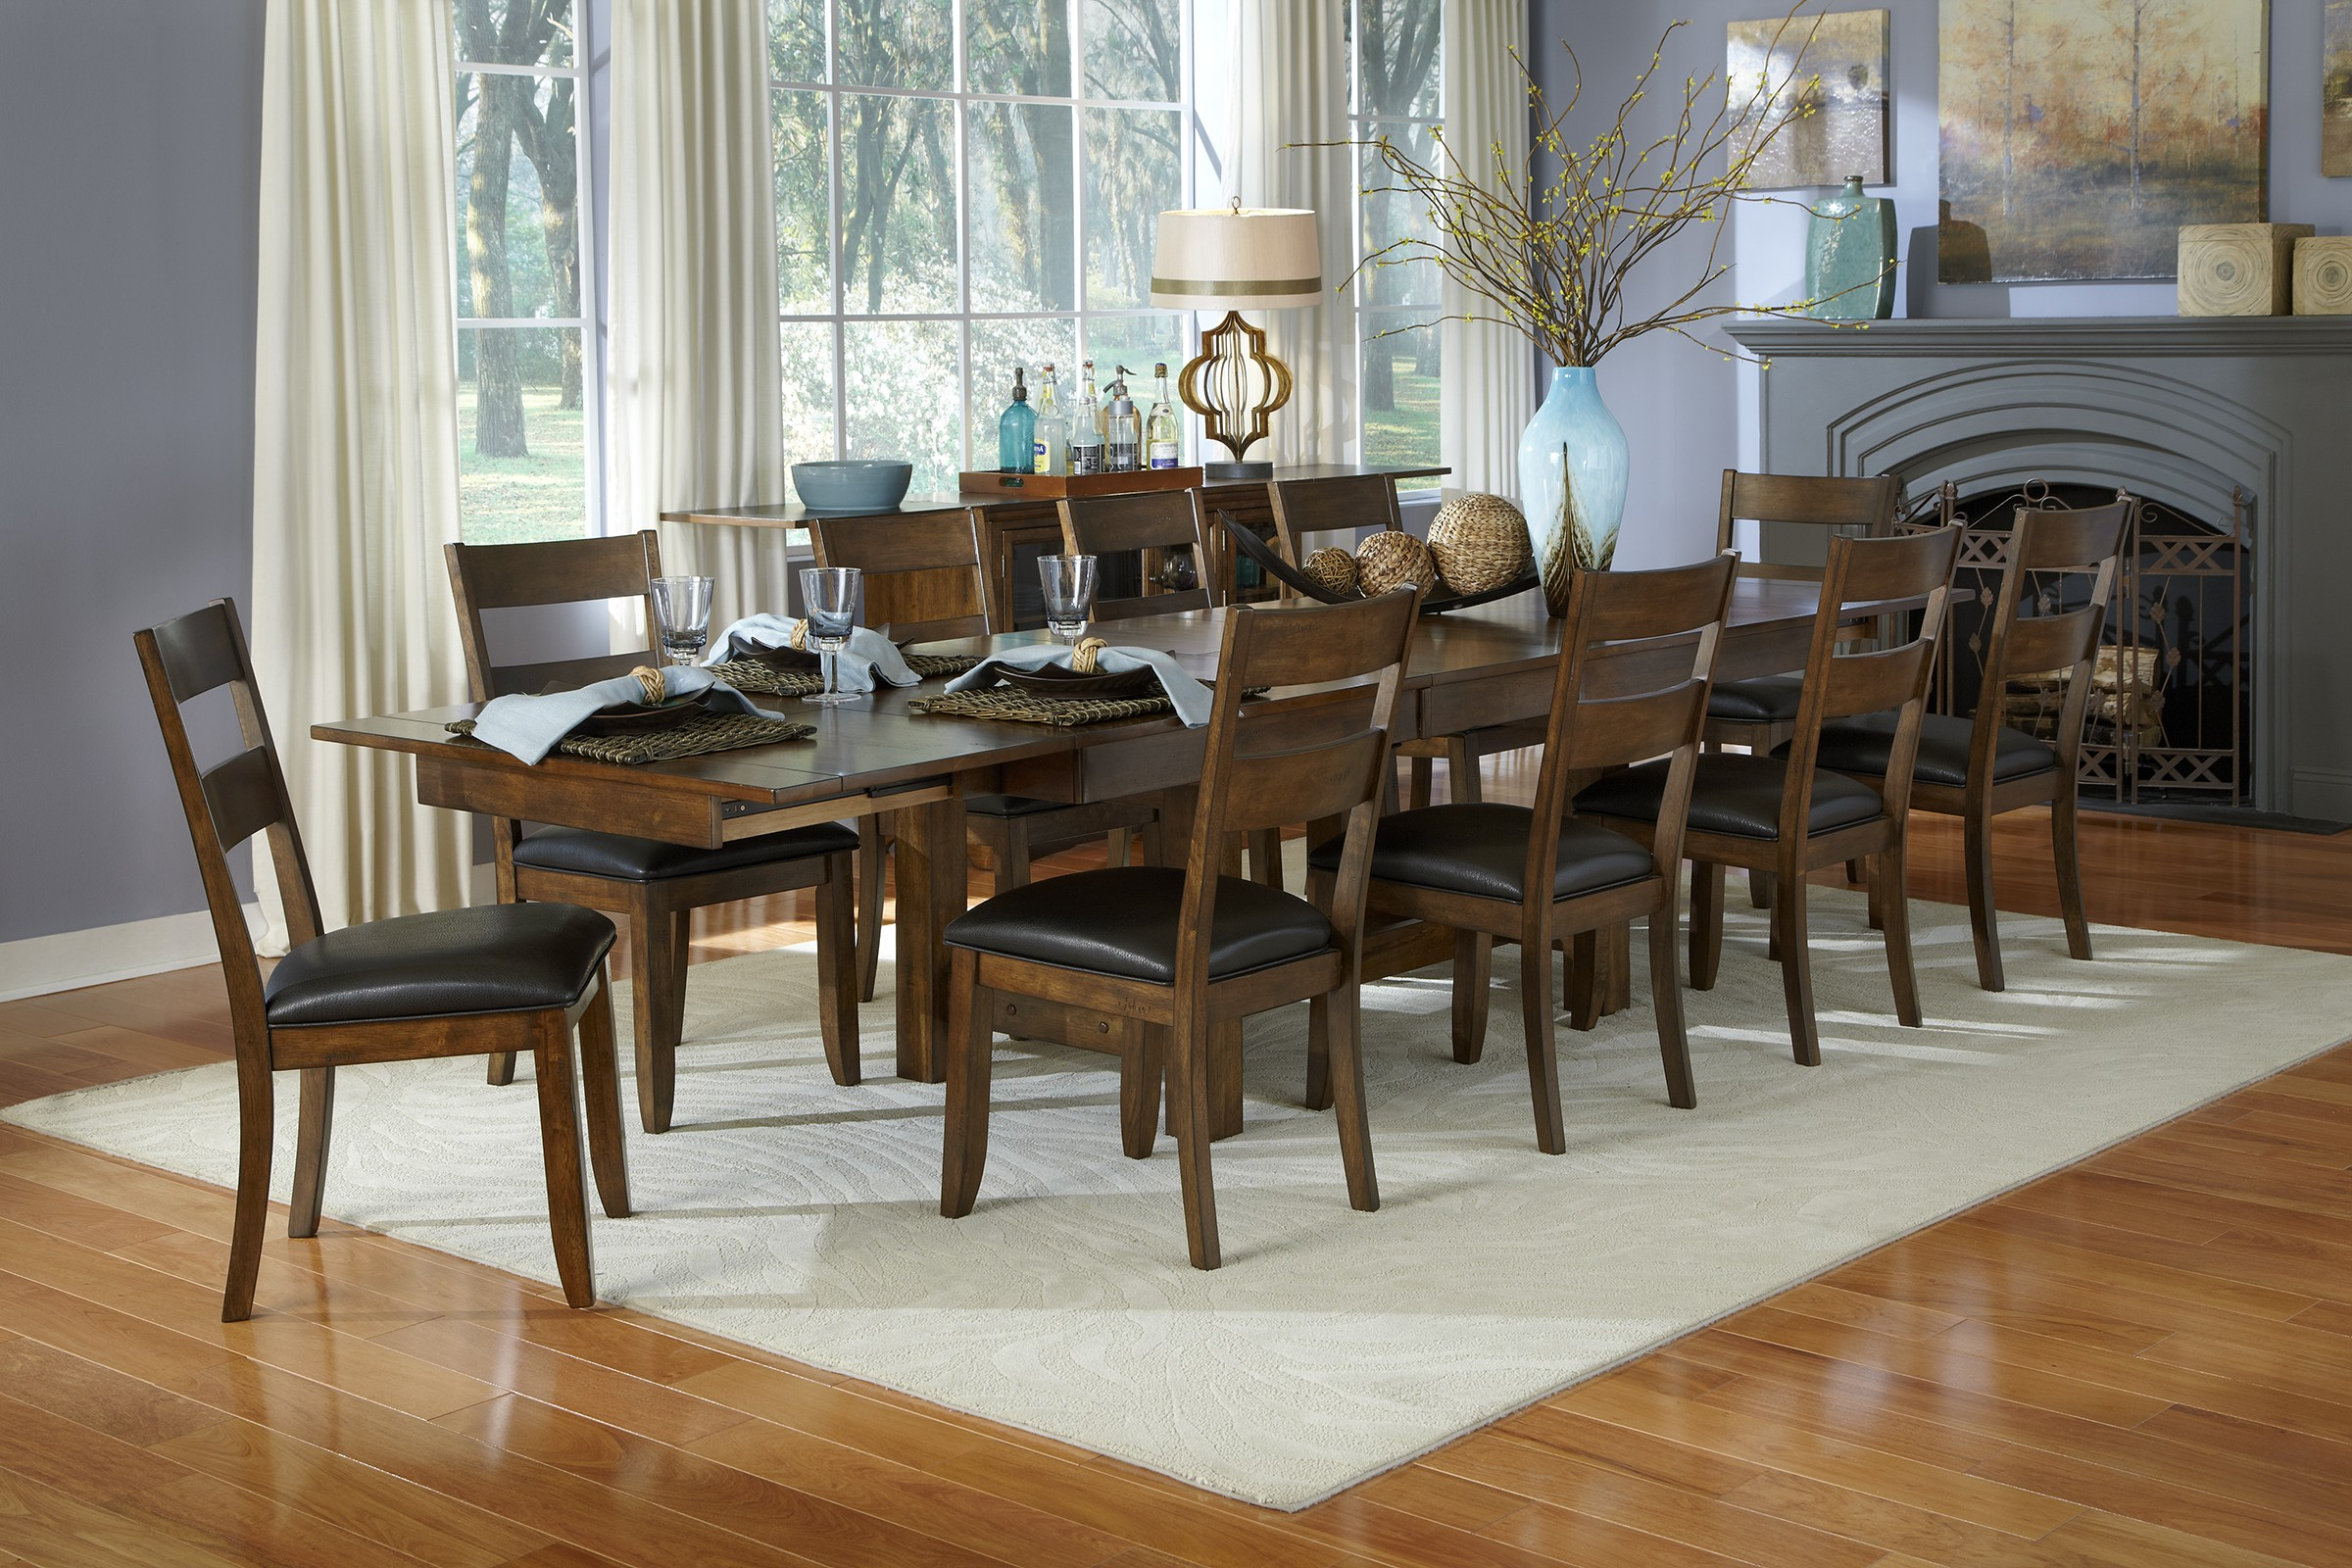 Mariposa 132 Rustic Whiskey Extendable Trestle Dining Room Set From A America Coleman Furniture